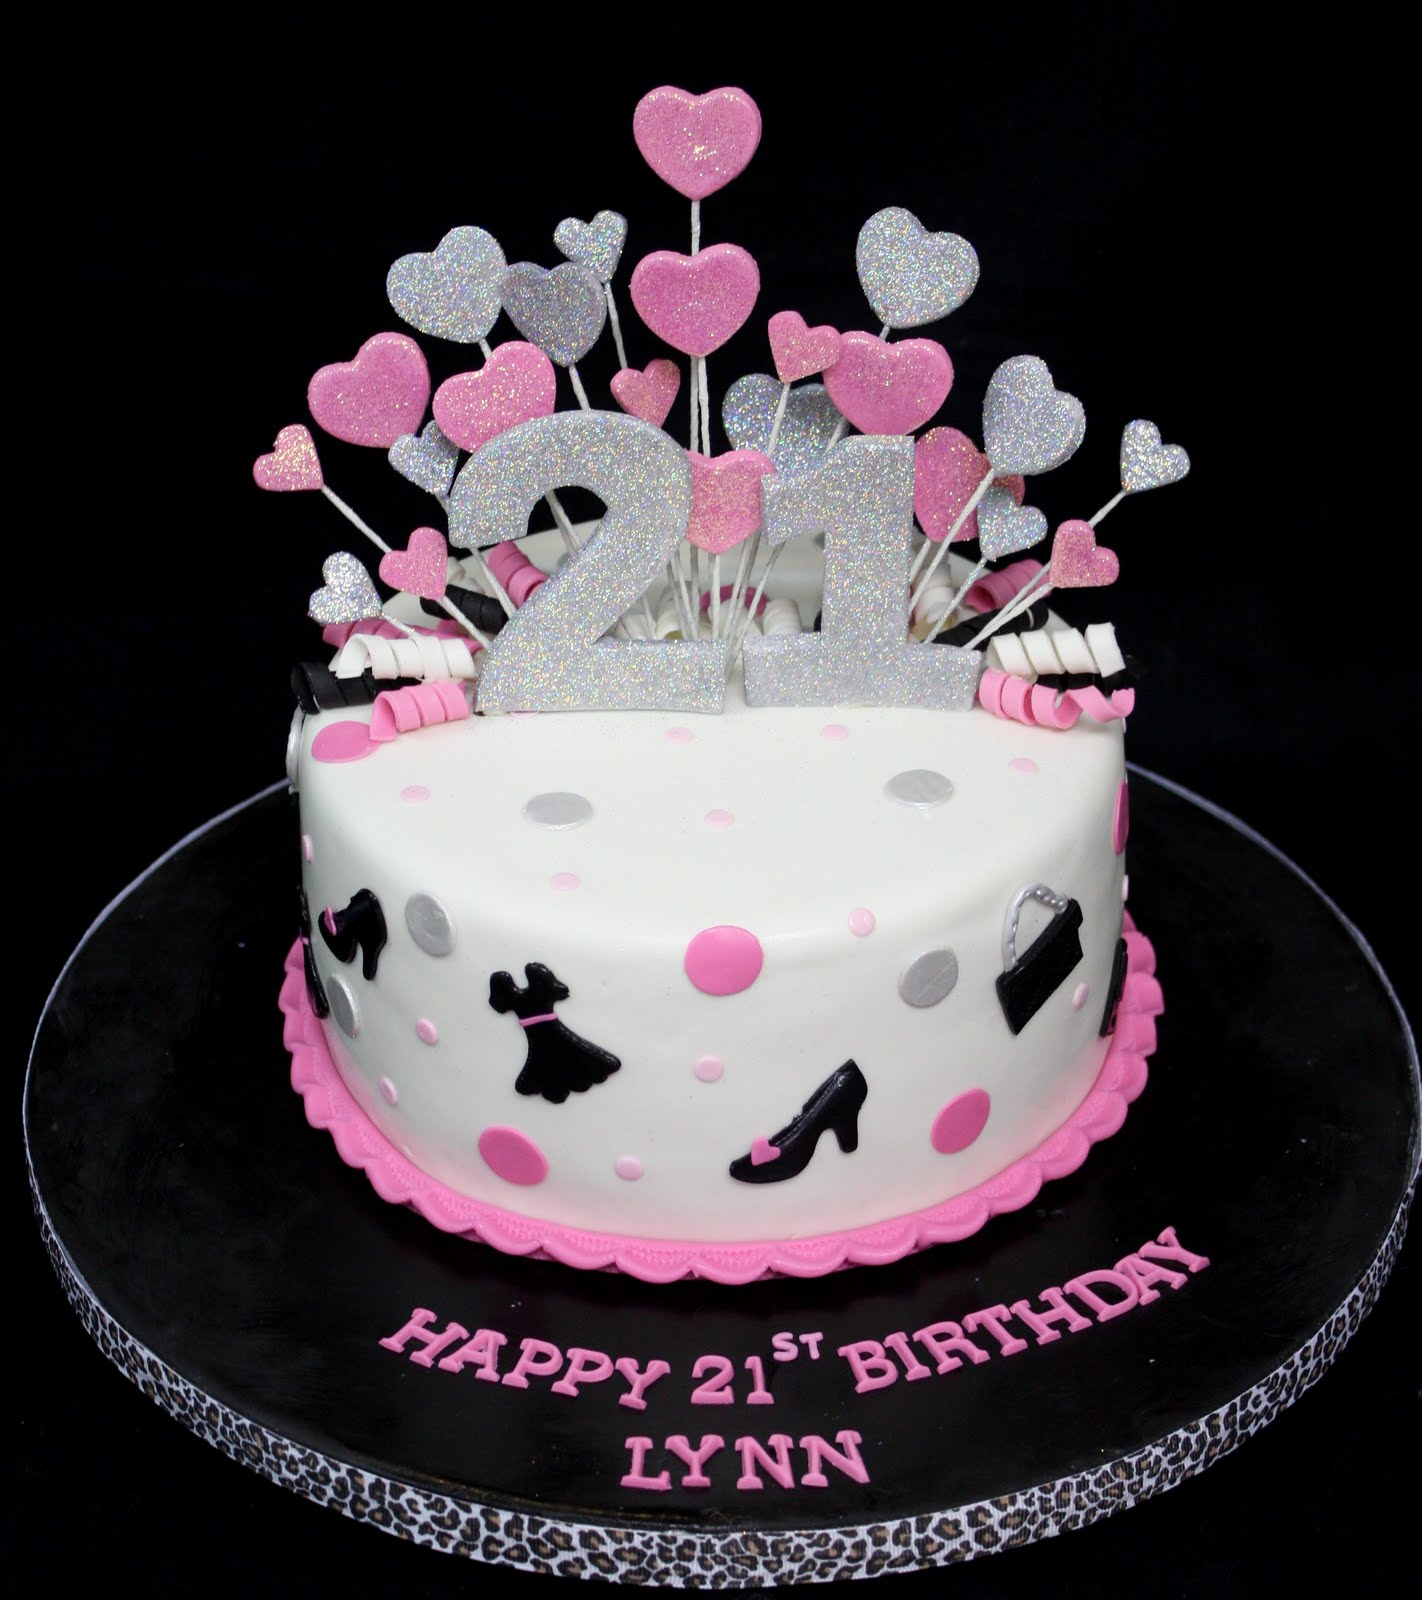 Cake Designs For Birthdays : 21st Birthday Cakes   Decoration Ideas Little Birthday Cakes